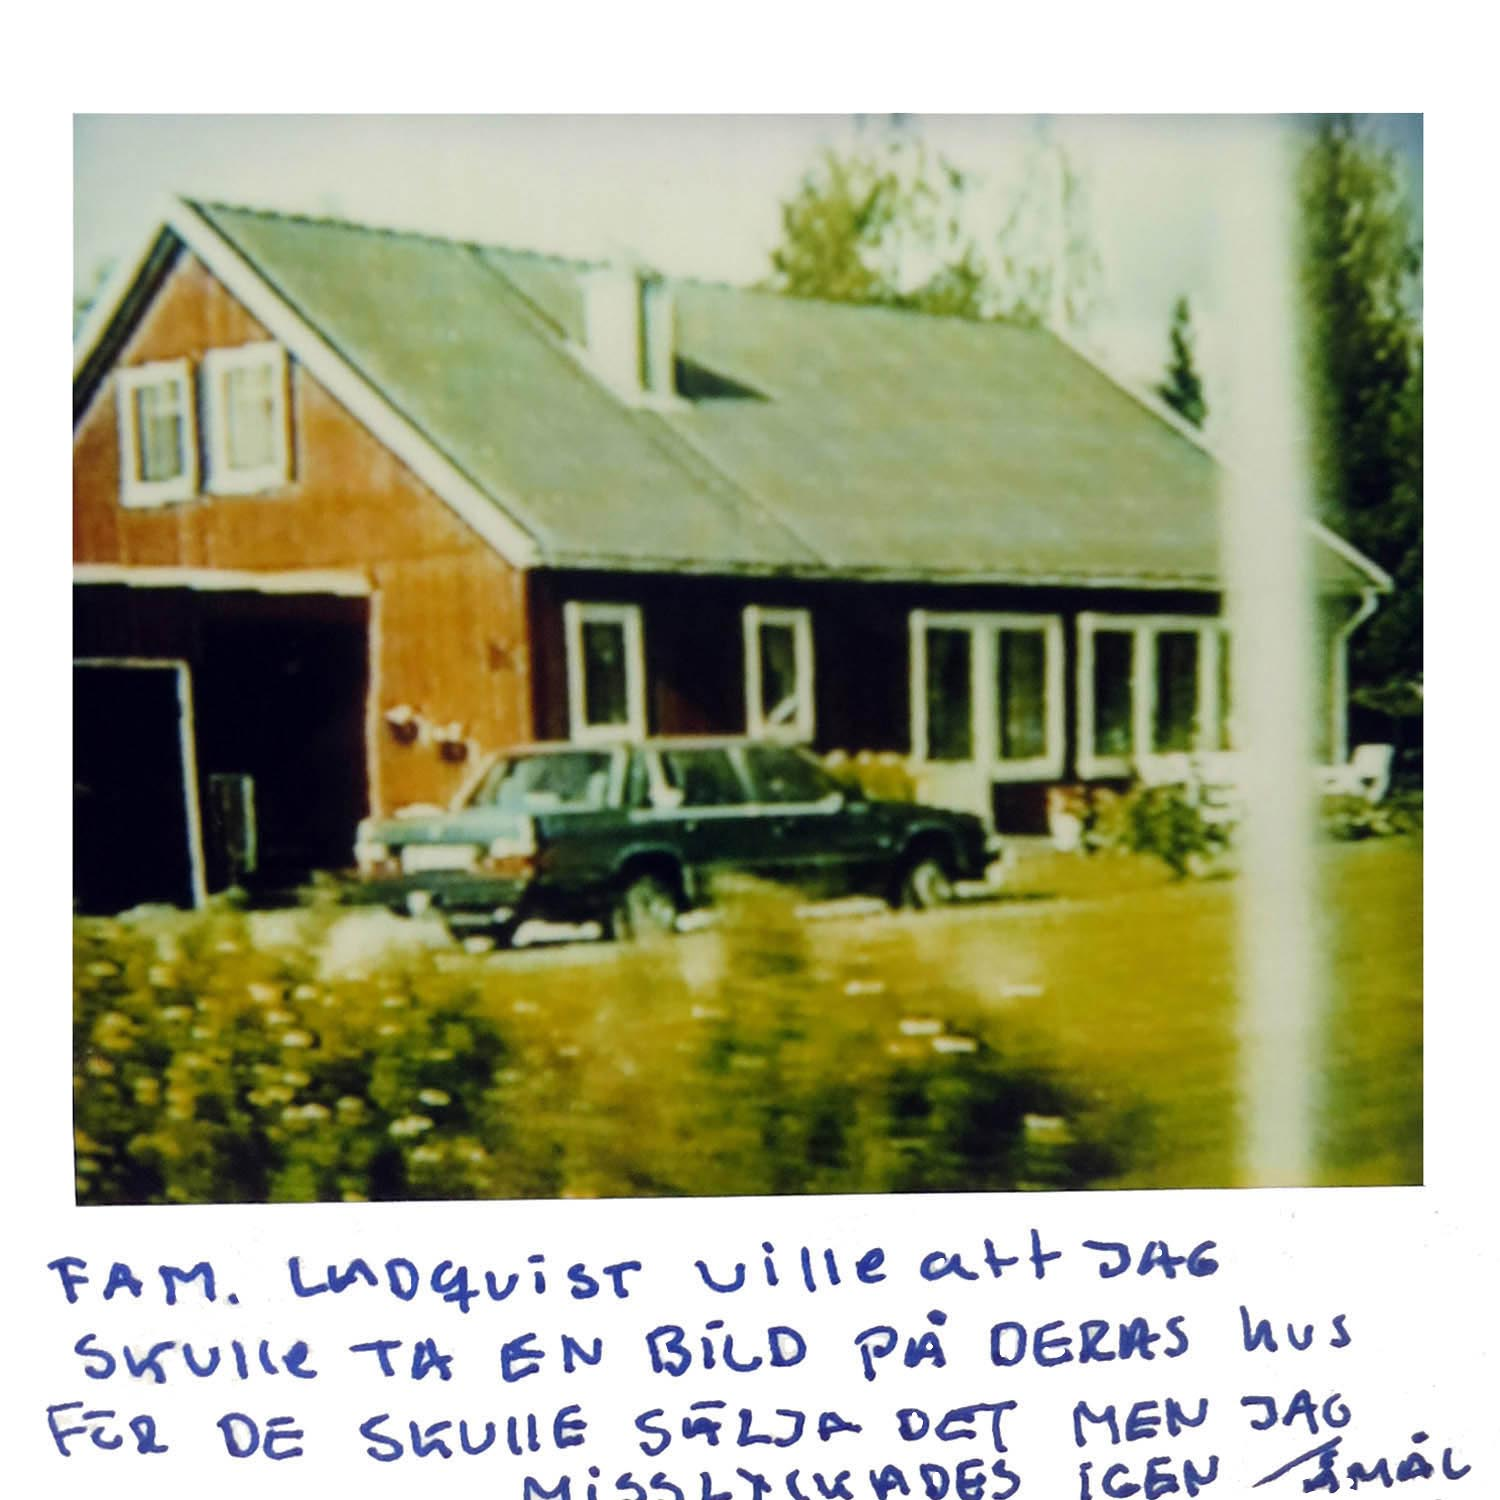 The Lundquist family wanted me to take a picture of their house, they where about to sell it, but I failed again.  ÅMÅL